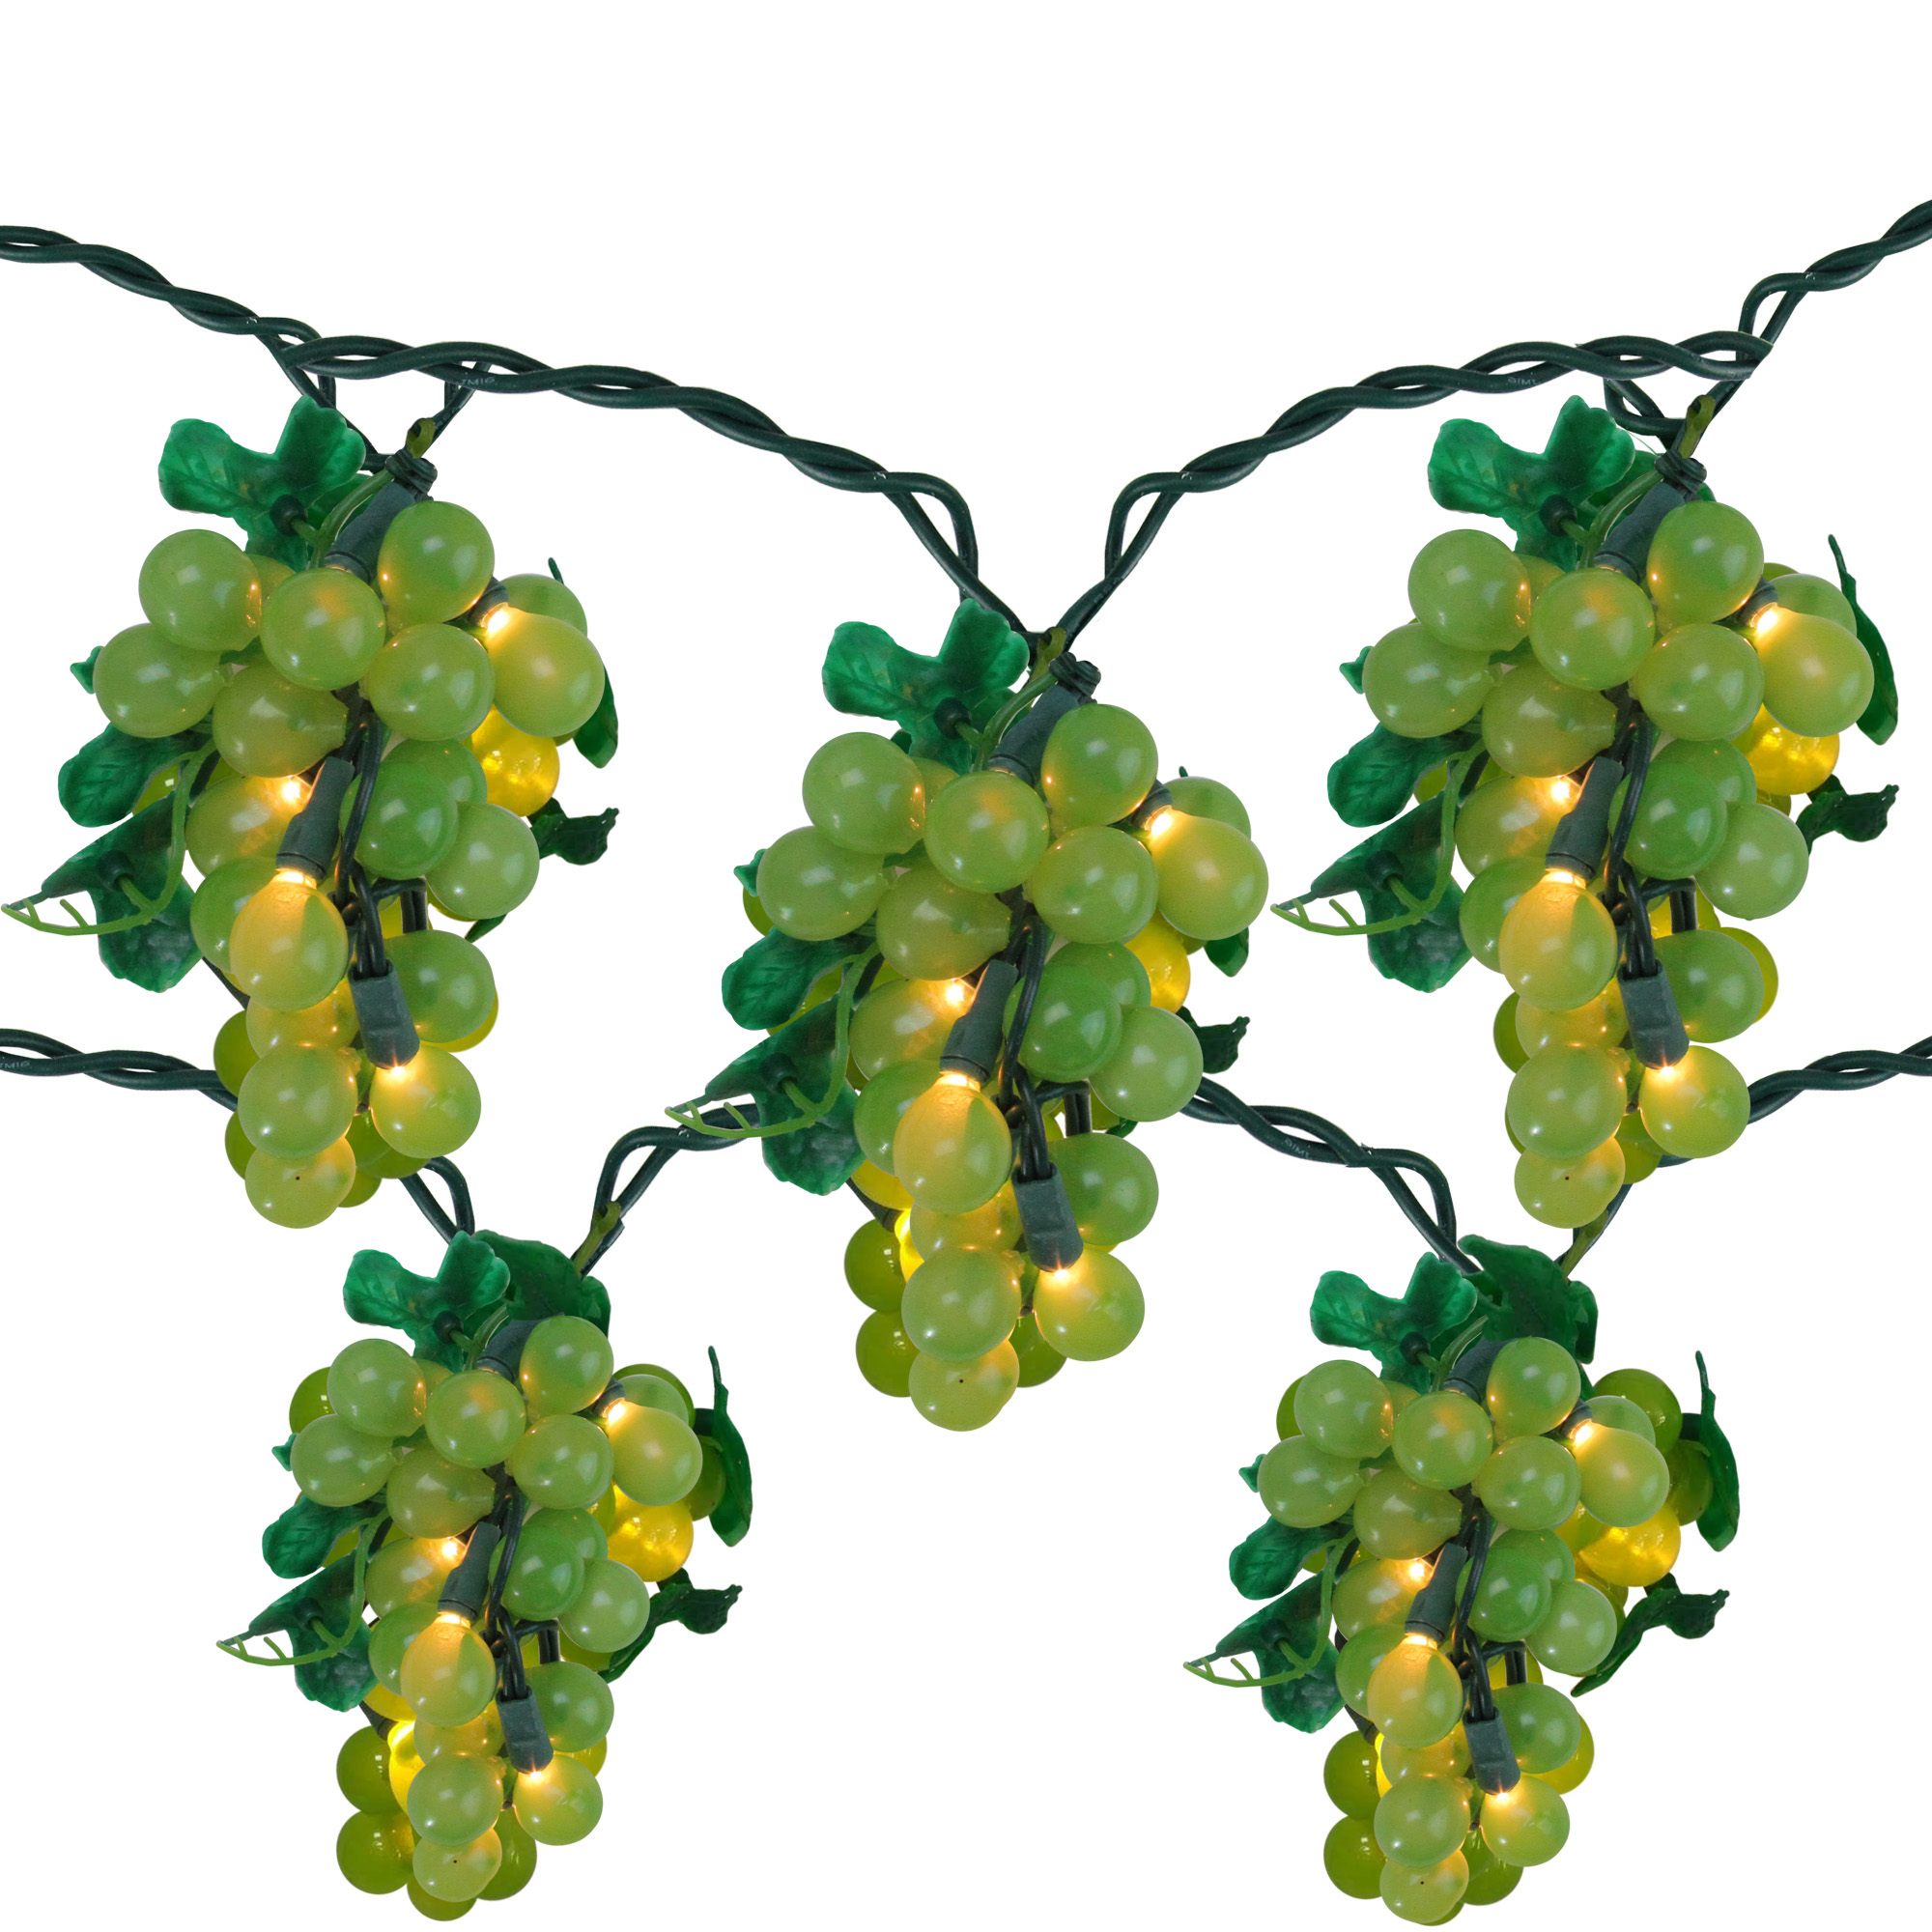 Tuscan Winery Green Grape Summer Garden Patio Christmas Light Set - 5 Clusters 35 Lights Green Wire